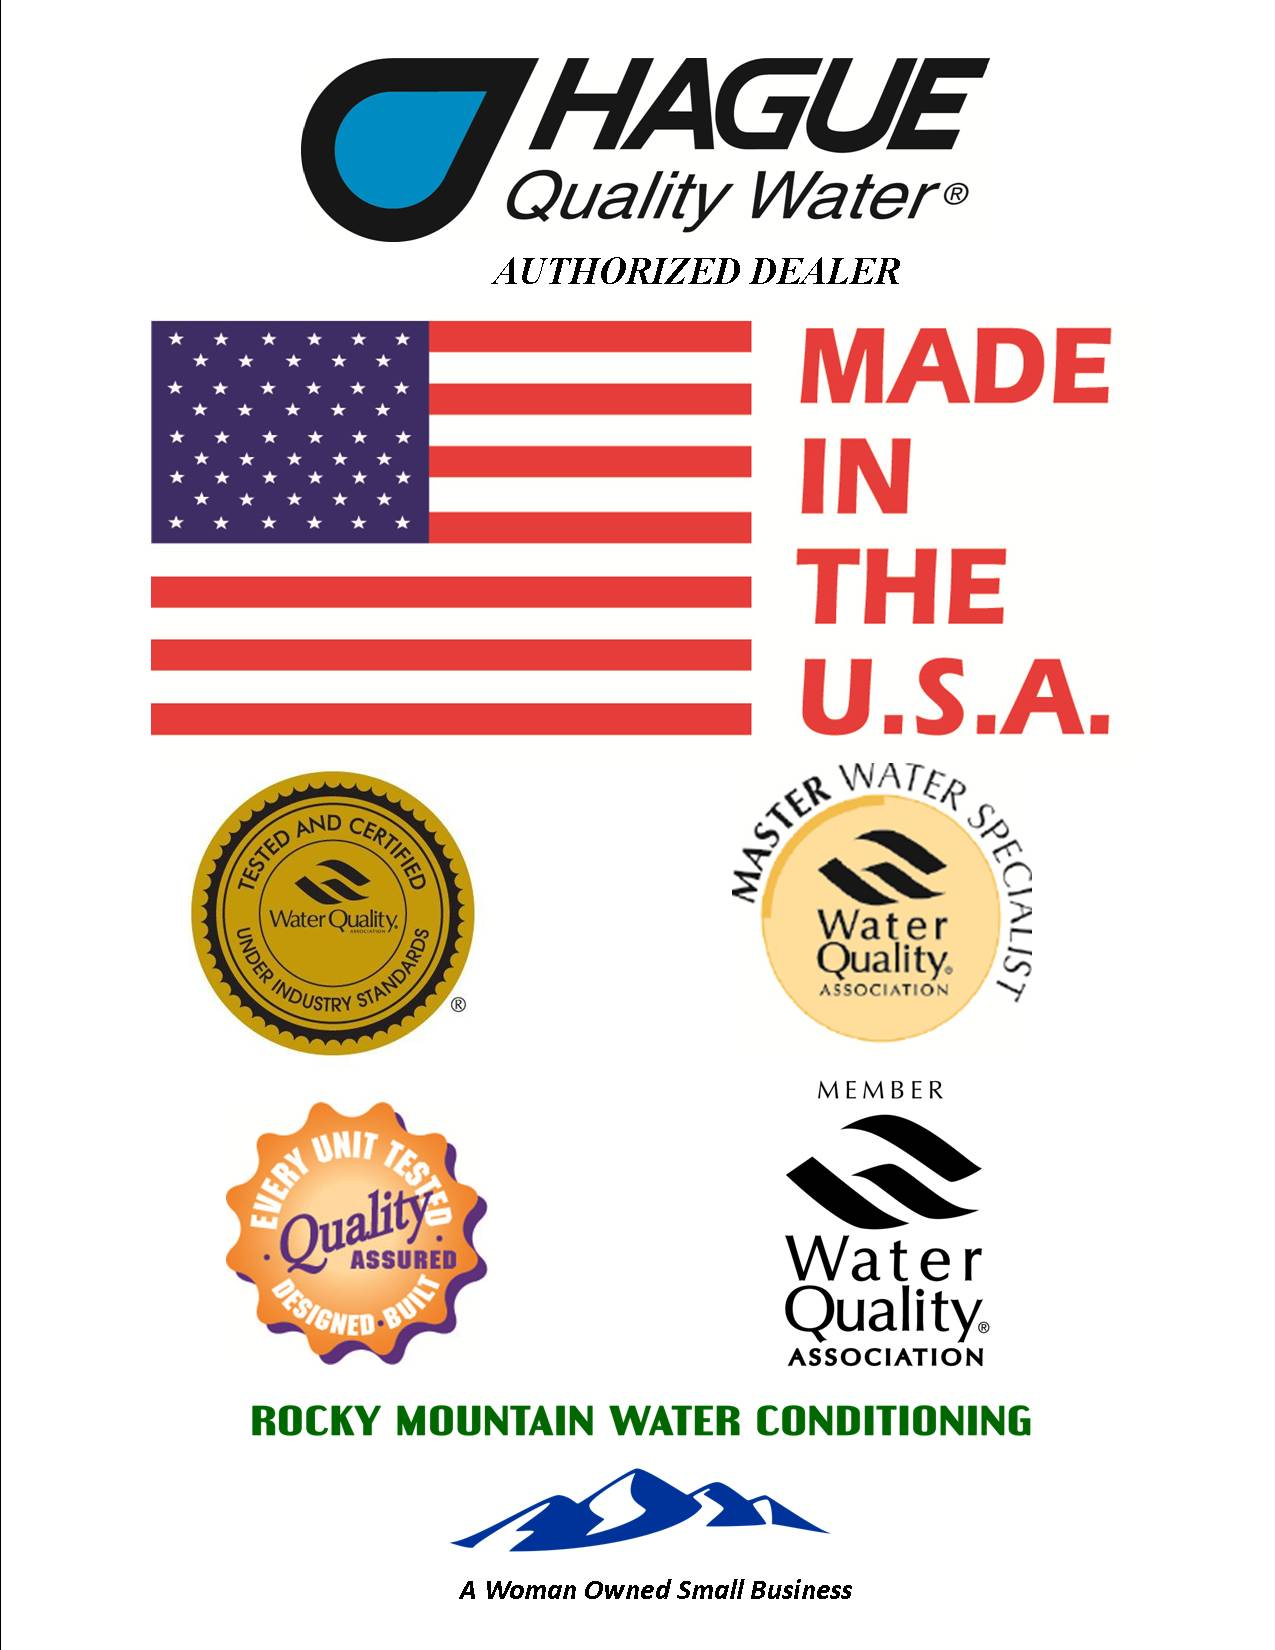 Completely manufactured and assembled - 100% Made In America